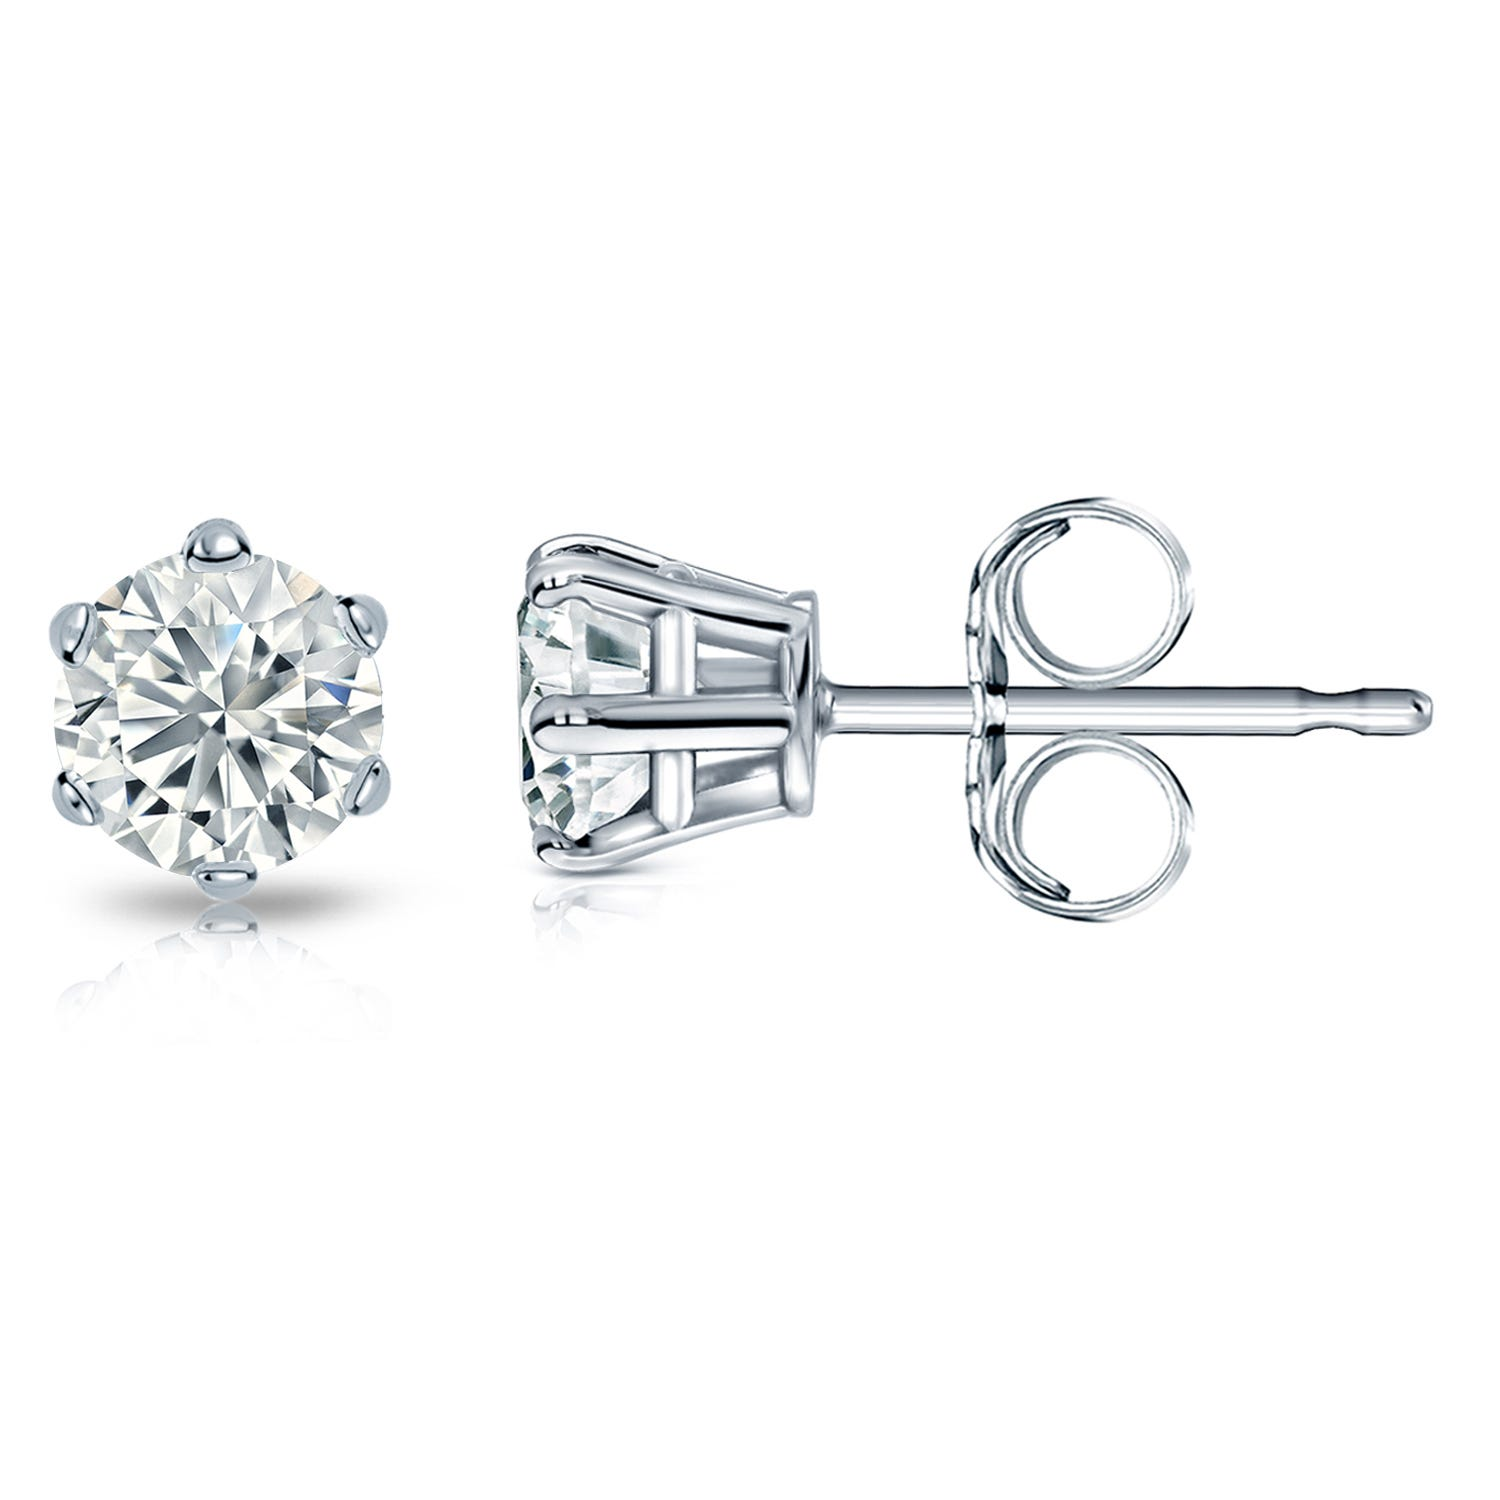 Round Diamond 1ctw. (IJ-I2) Solitaire Stud 6-Prong Earrings in 10K White Gold